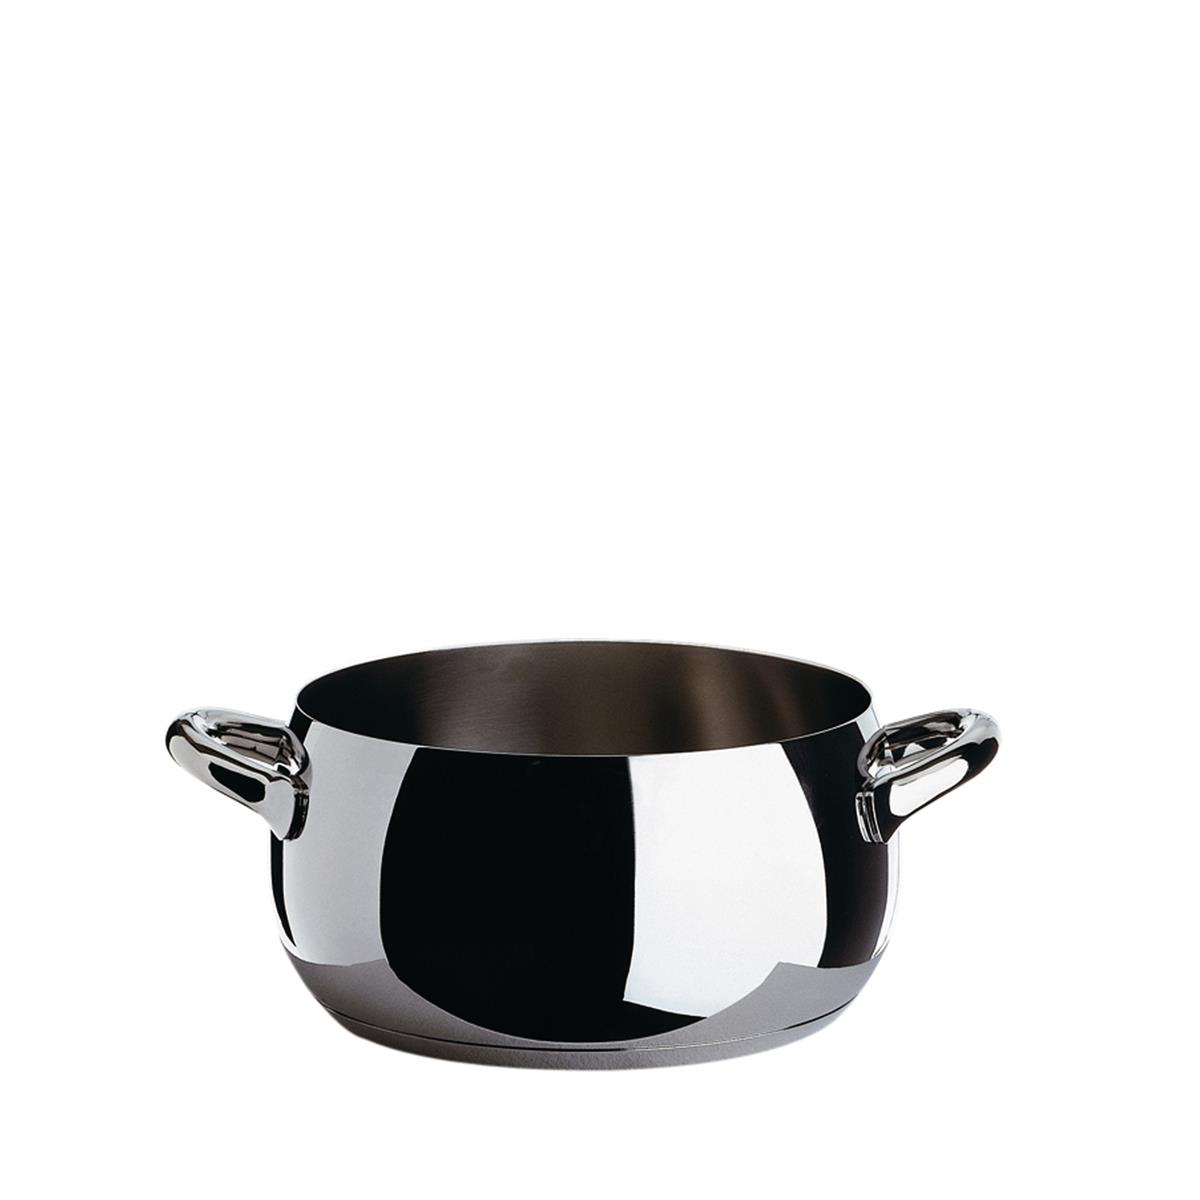 Alessi-Mami Casserole with two handles in 18/10 stainless steel suitable for induction